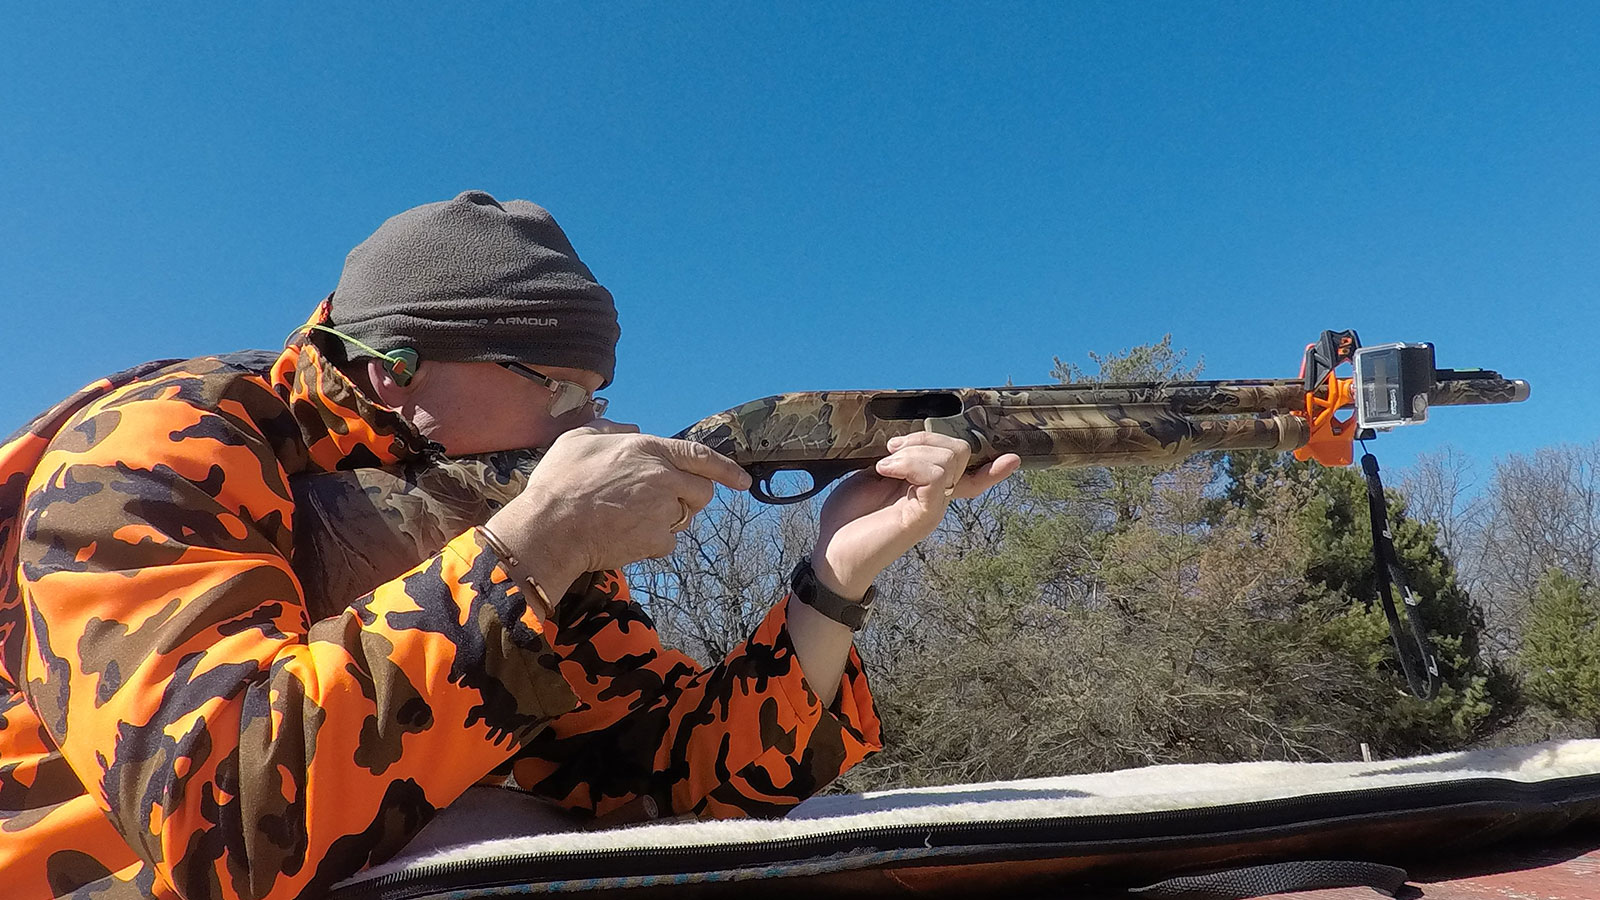 dango_grippermount_hunting_rifle_shooting_range_11_1600x900_